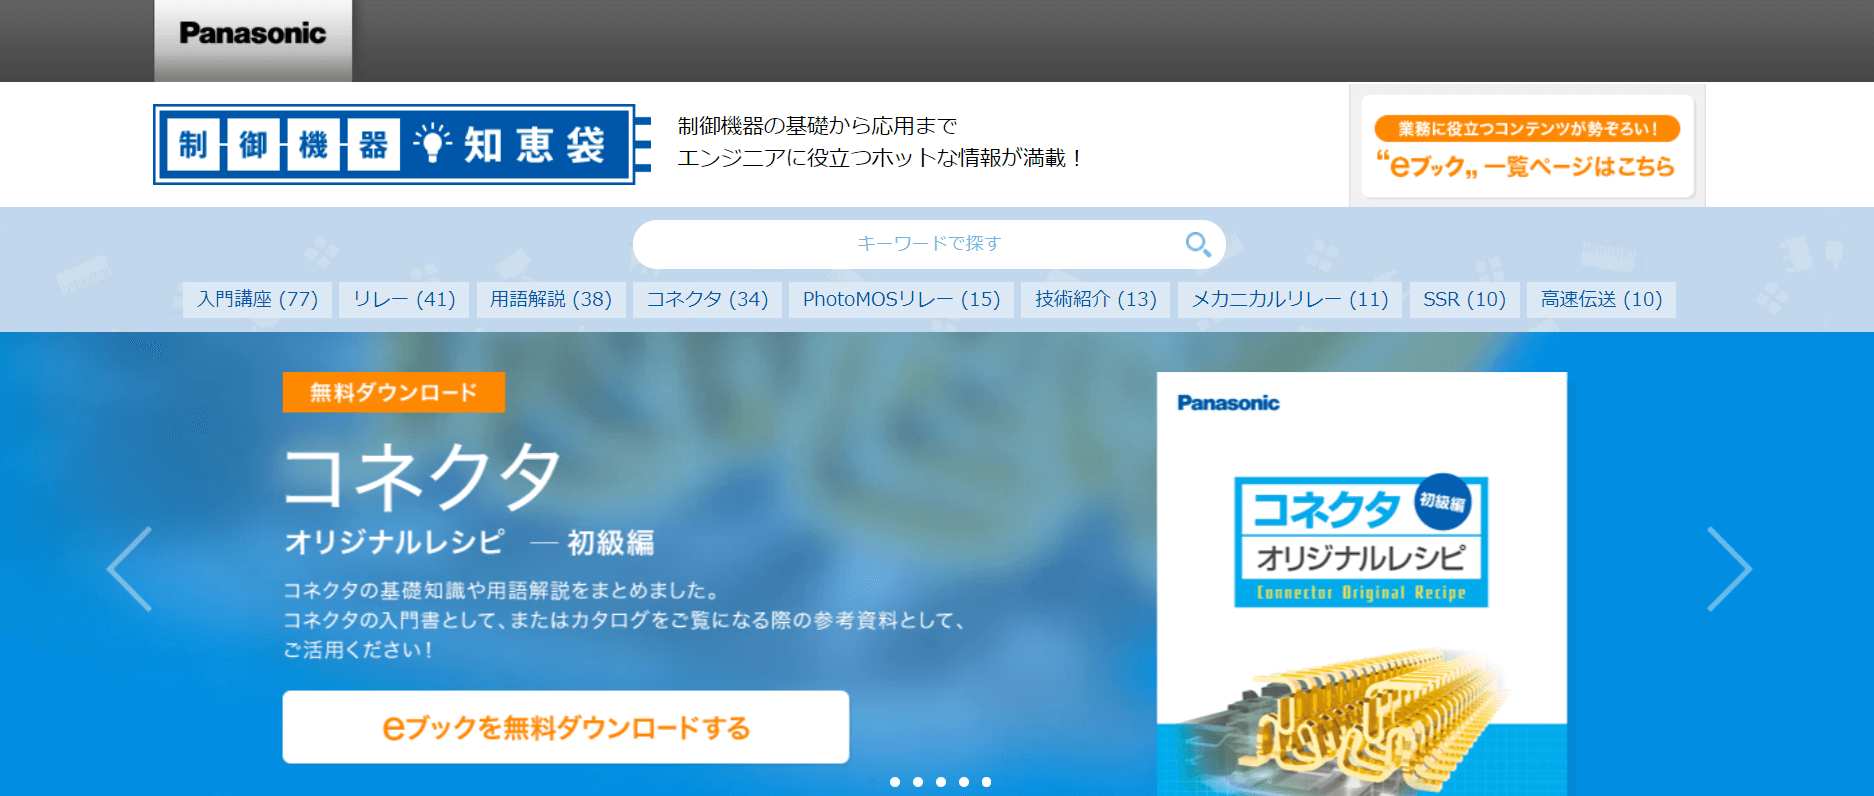 panasonic_homepage